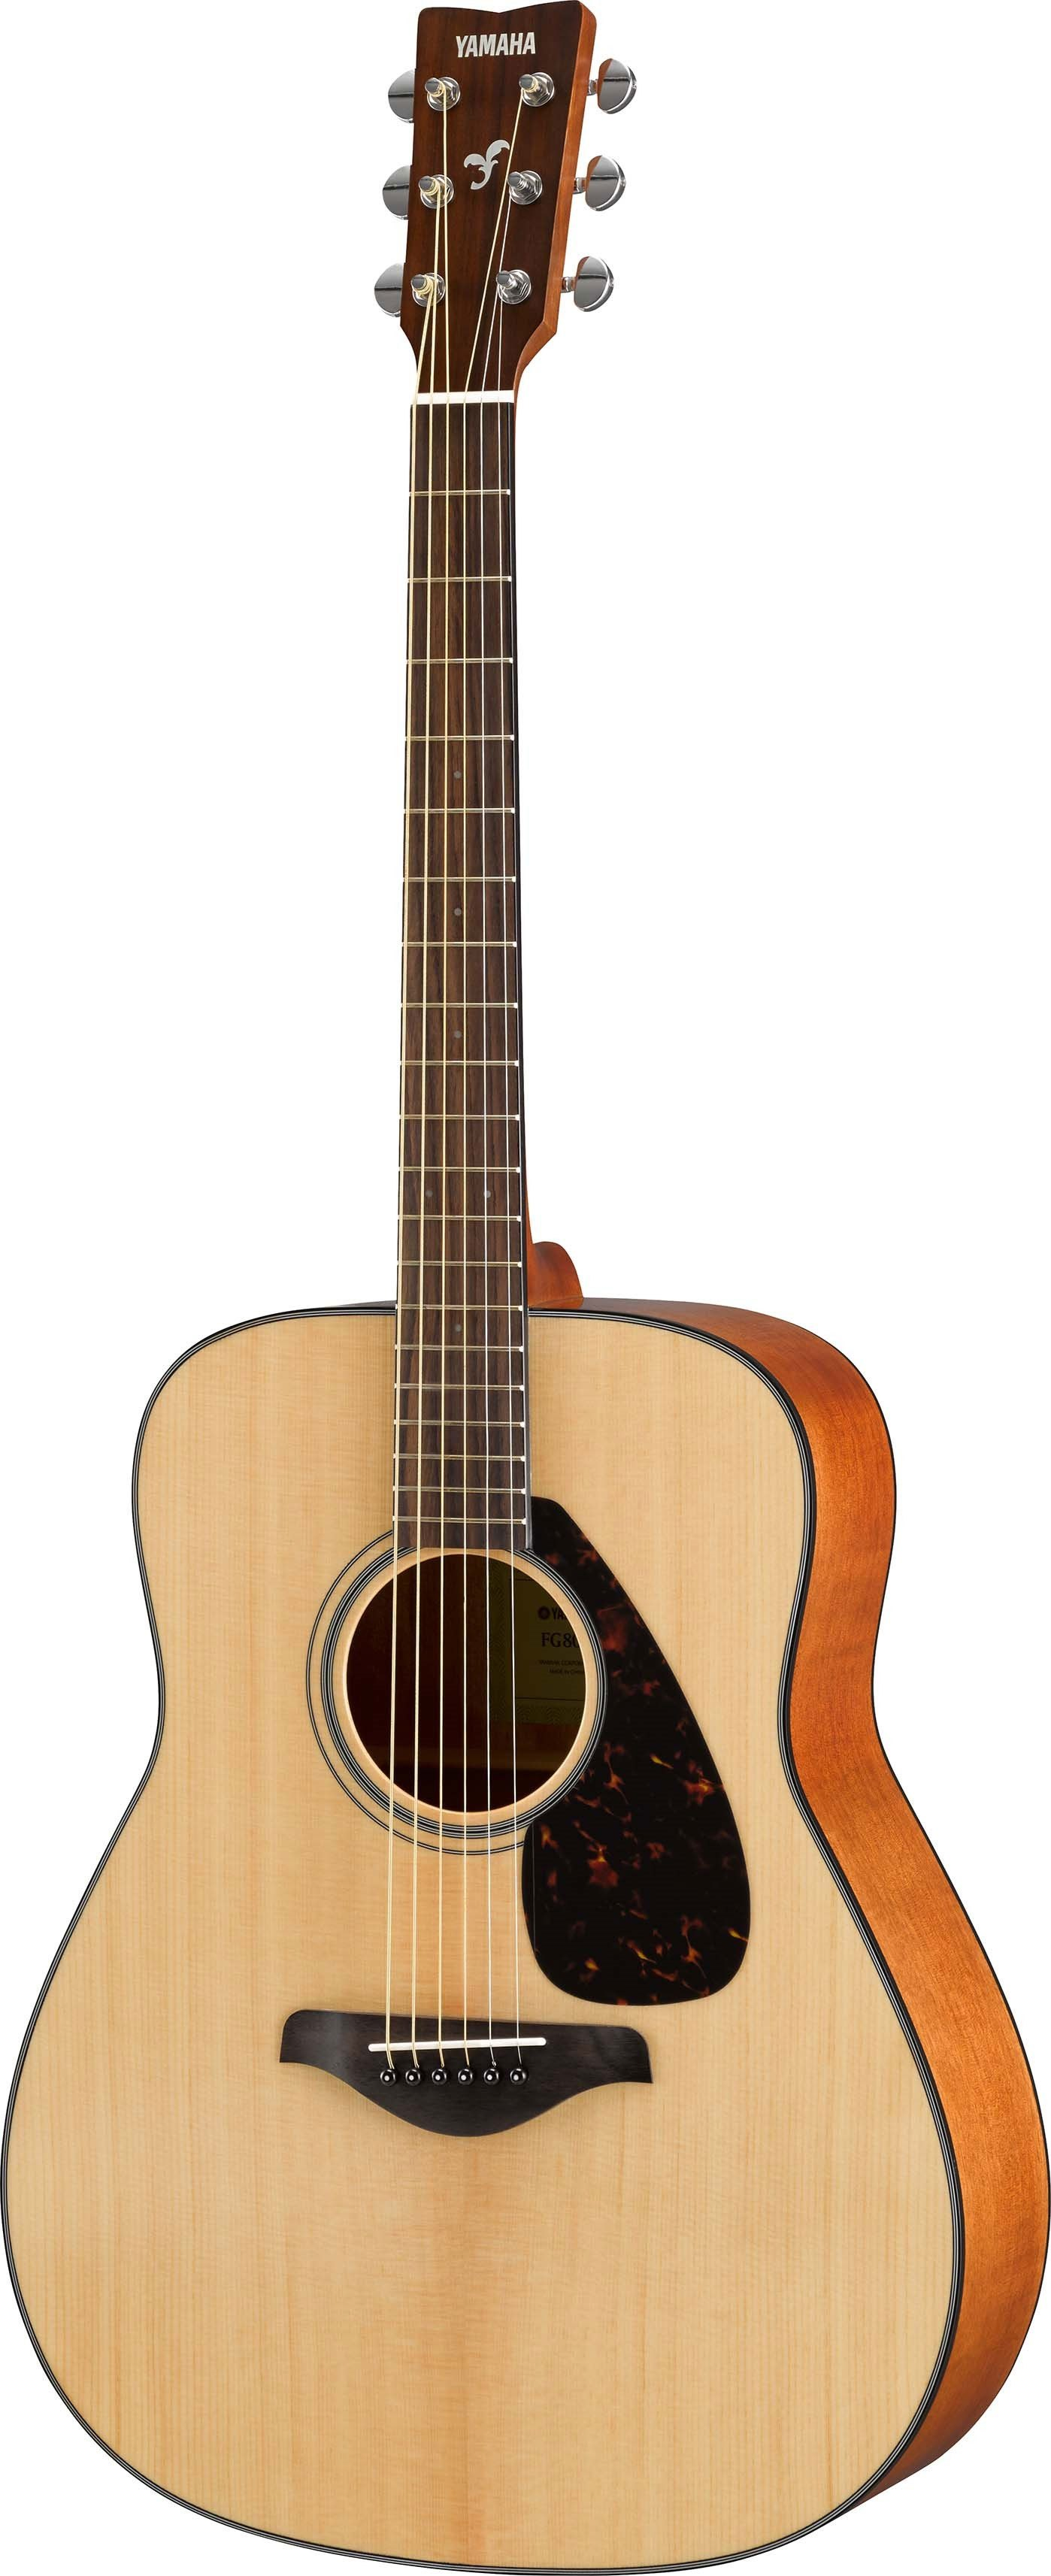 Acoustic guitar with natural wood finish.